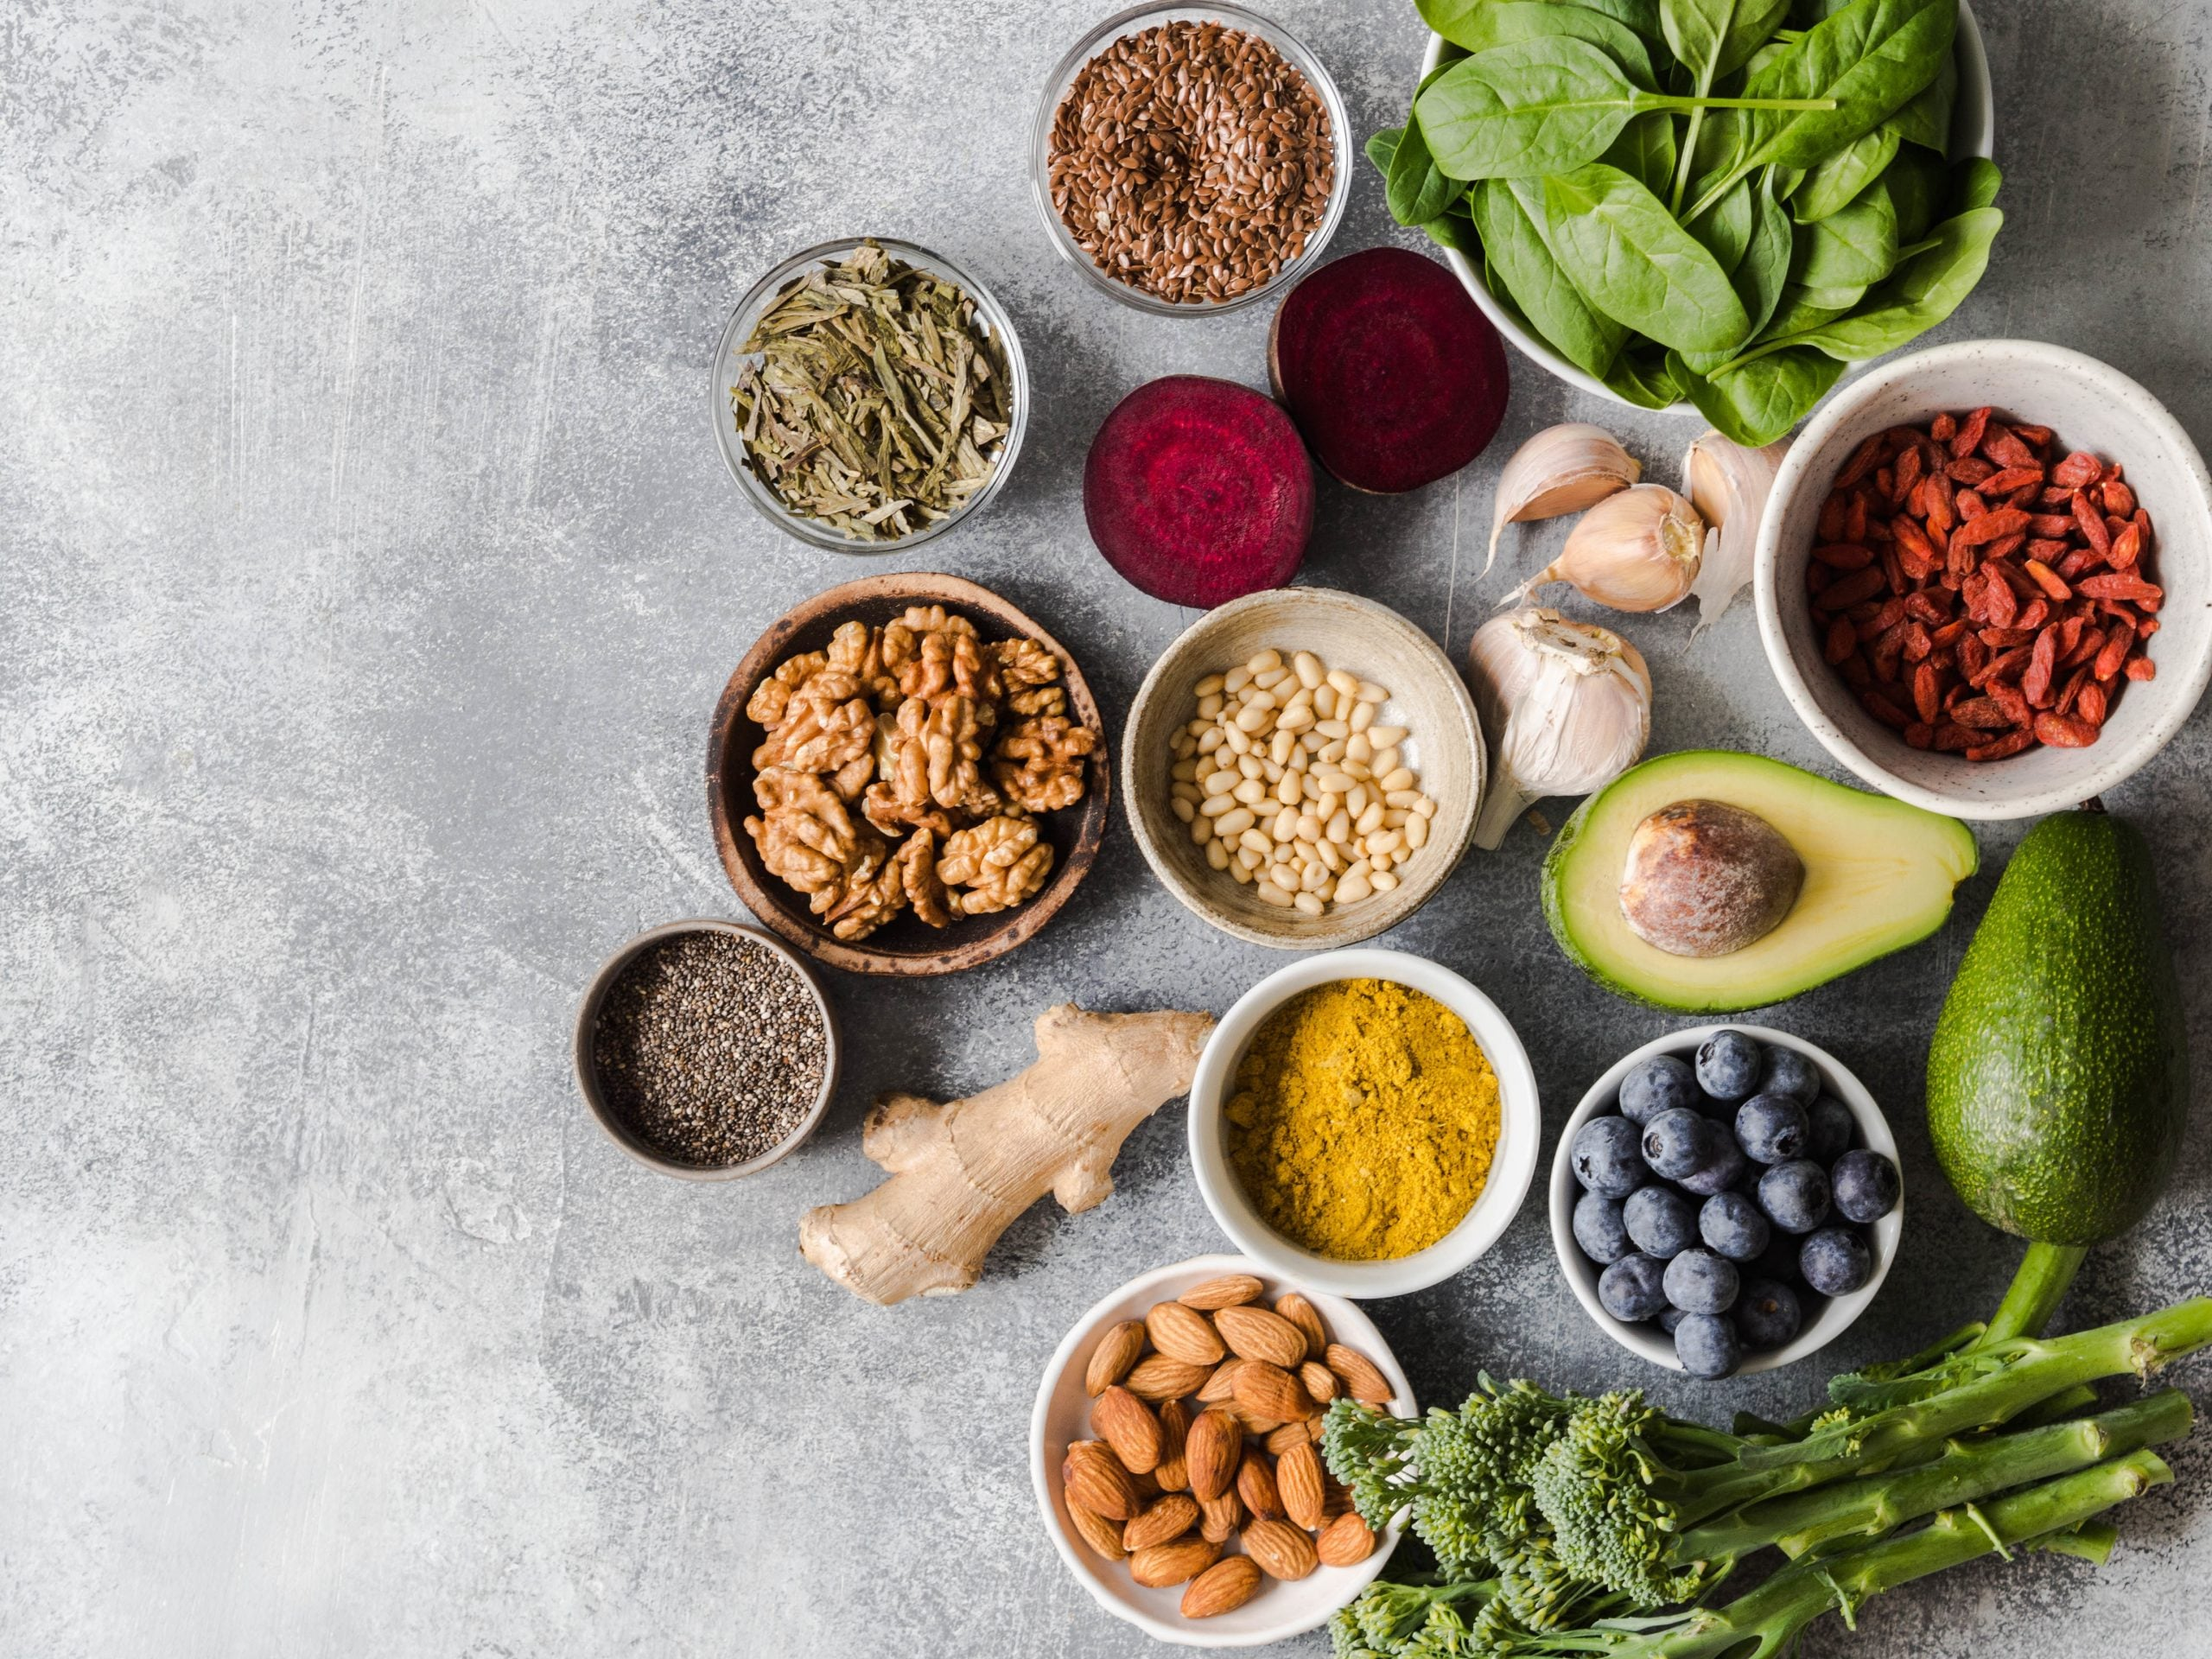 Healthy clean food - vegetables, fruits, nuts, superfoods on a gray background. Healthy eating concept.